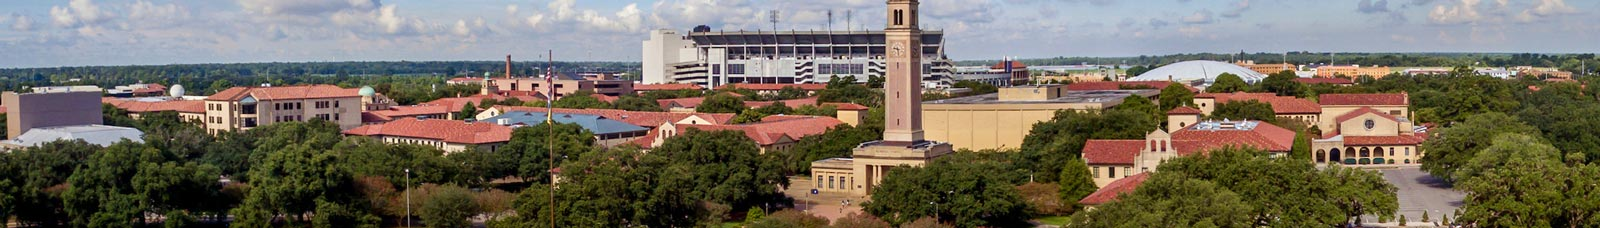 Aerial view of the LSU Campus